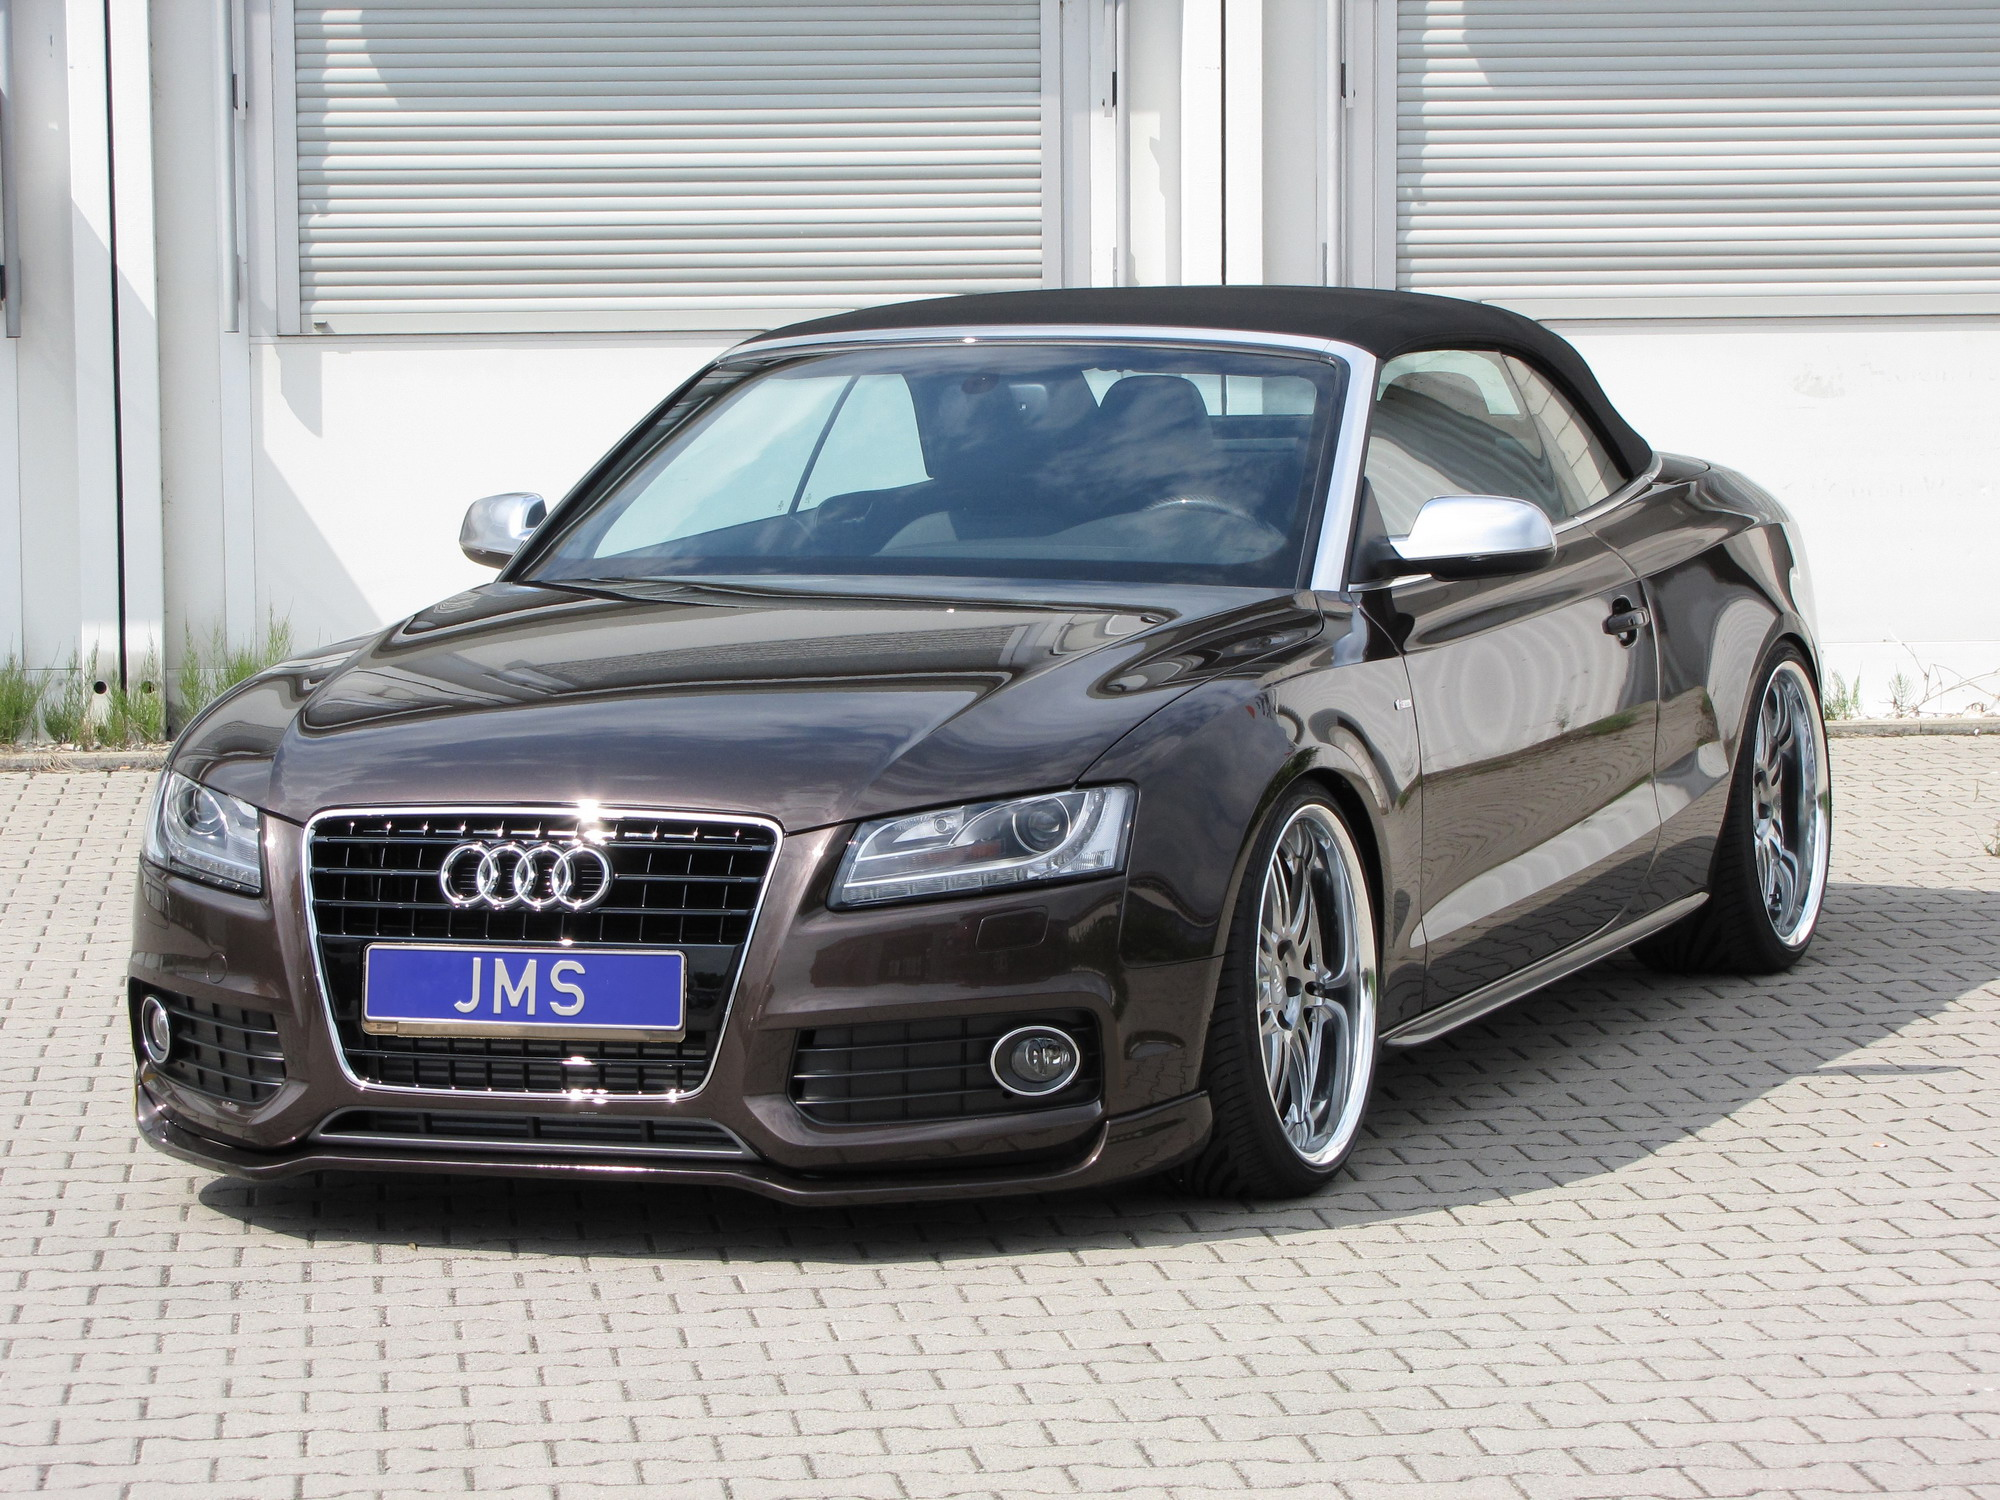 2010 Audi A5 S Line By Jms Top Speed